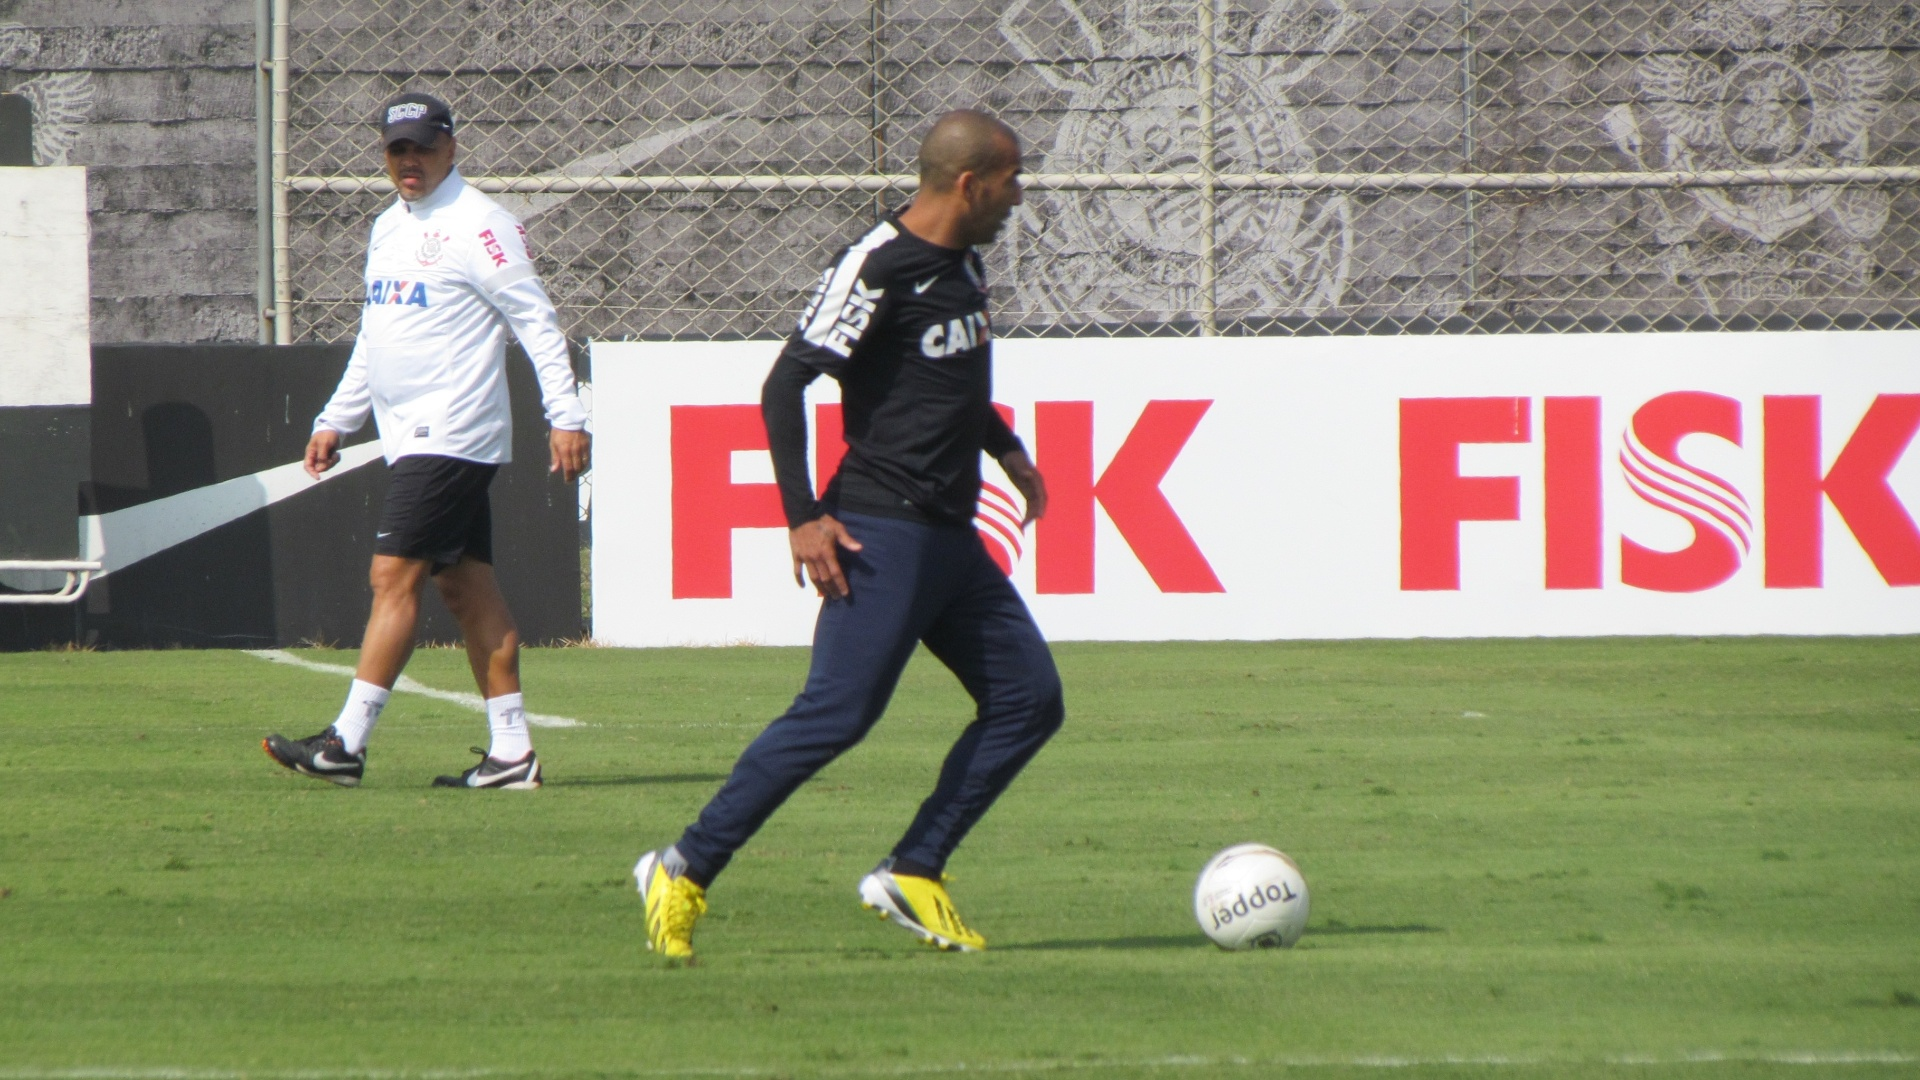 11-05-2013 - Sheik corre com bola durante treino do Corinthians